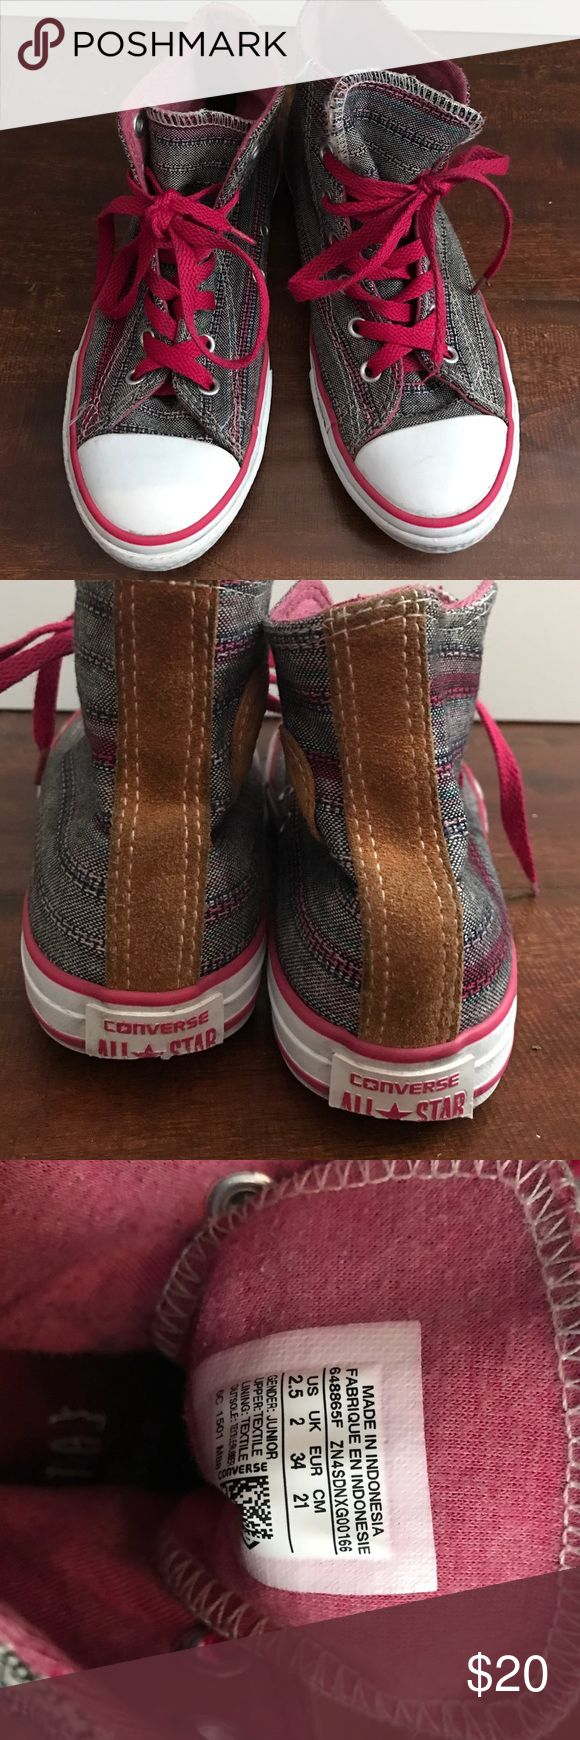 Converse high tops Converse high tops for junior size US 2.5 worn twice but like new very cute and chic for girls!! Converse Shoes Sneakers